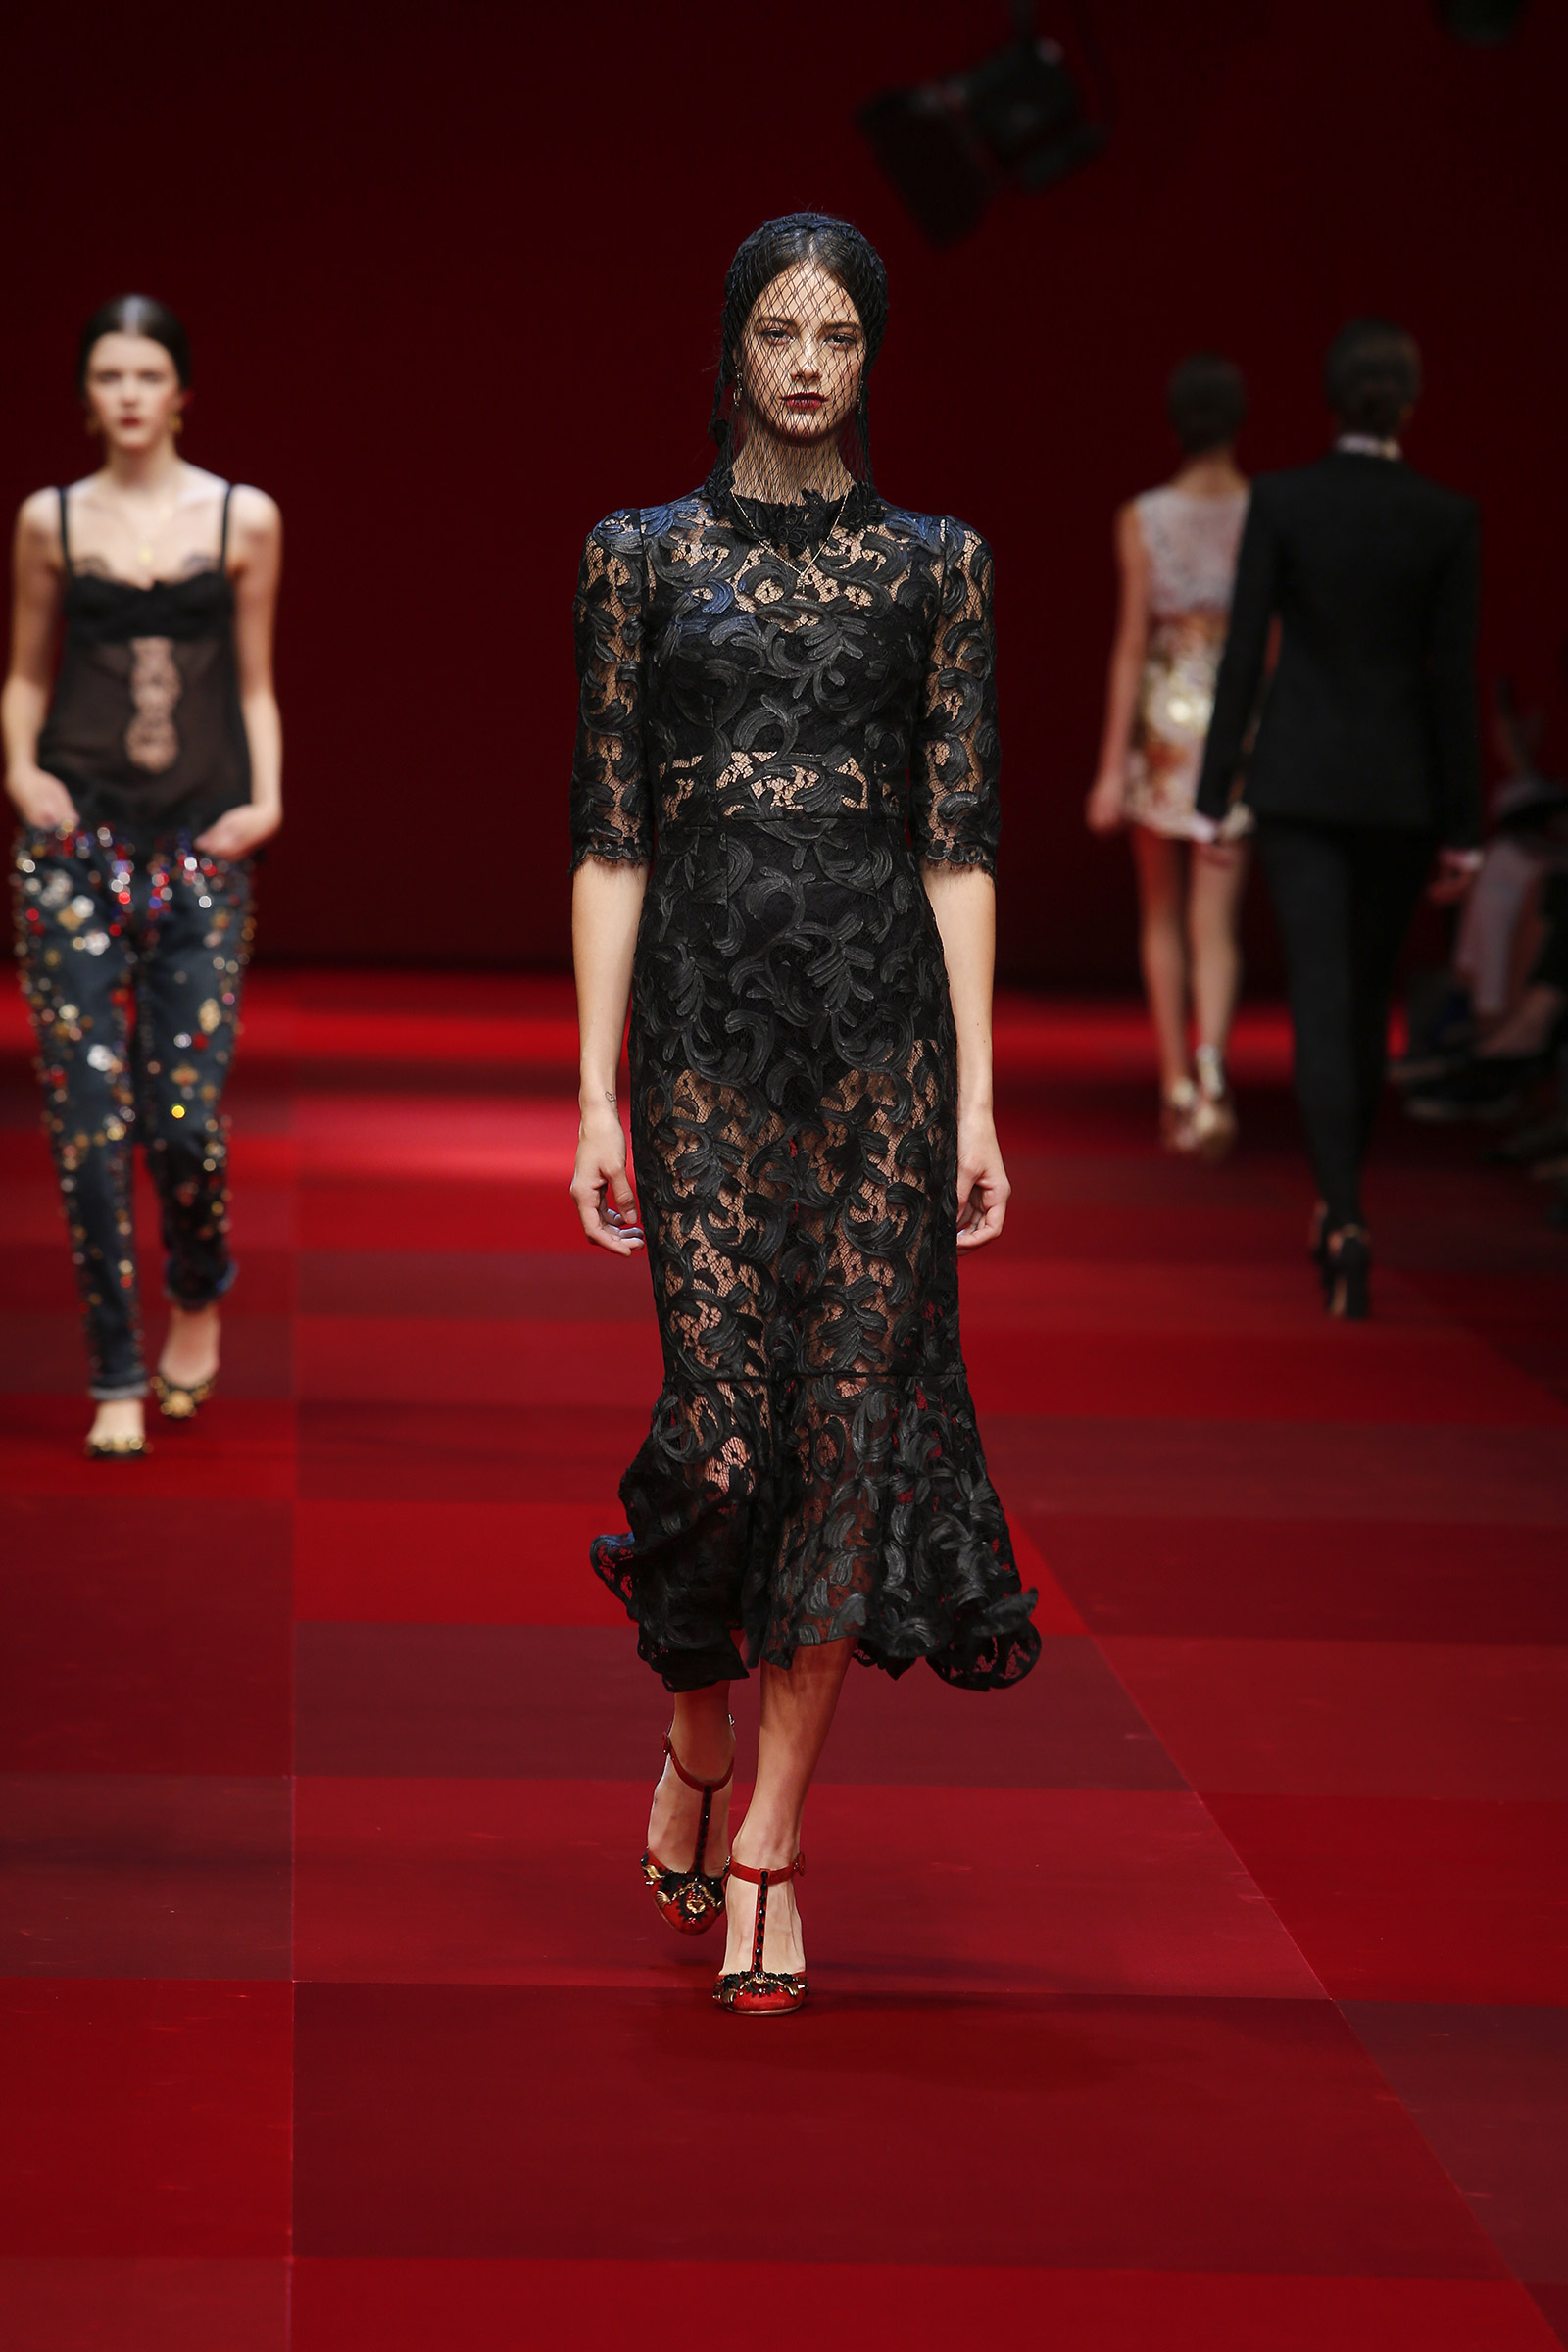 dolce-and-gabbana-summer-2015-women-fashion-show-runway-016